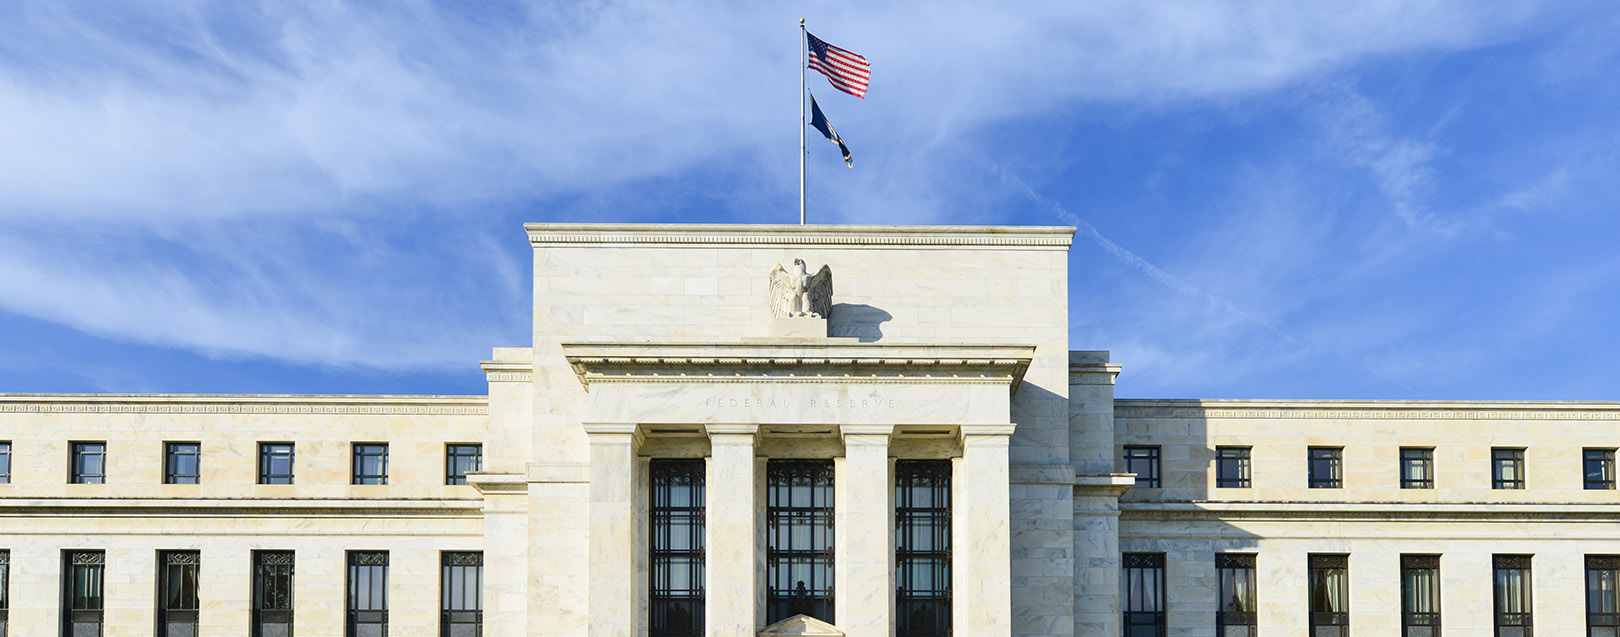 Rupee seeing moderate volatility amid Fed actions